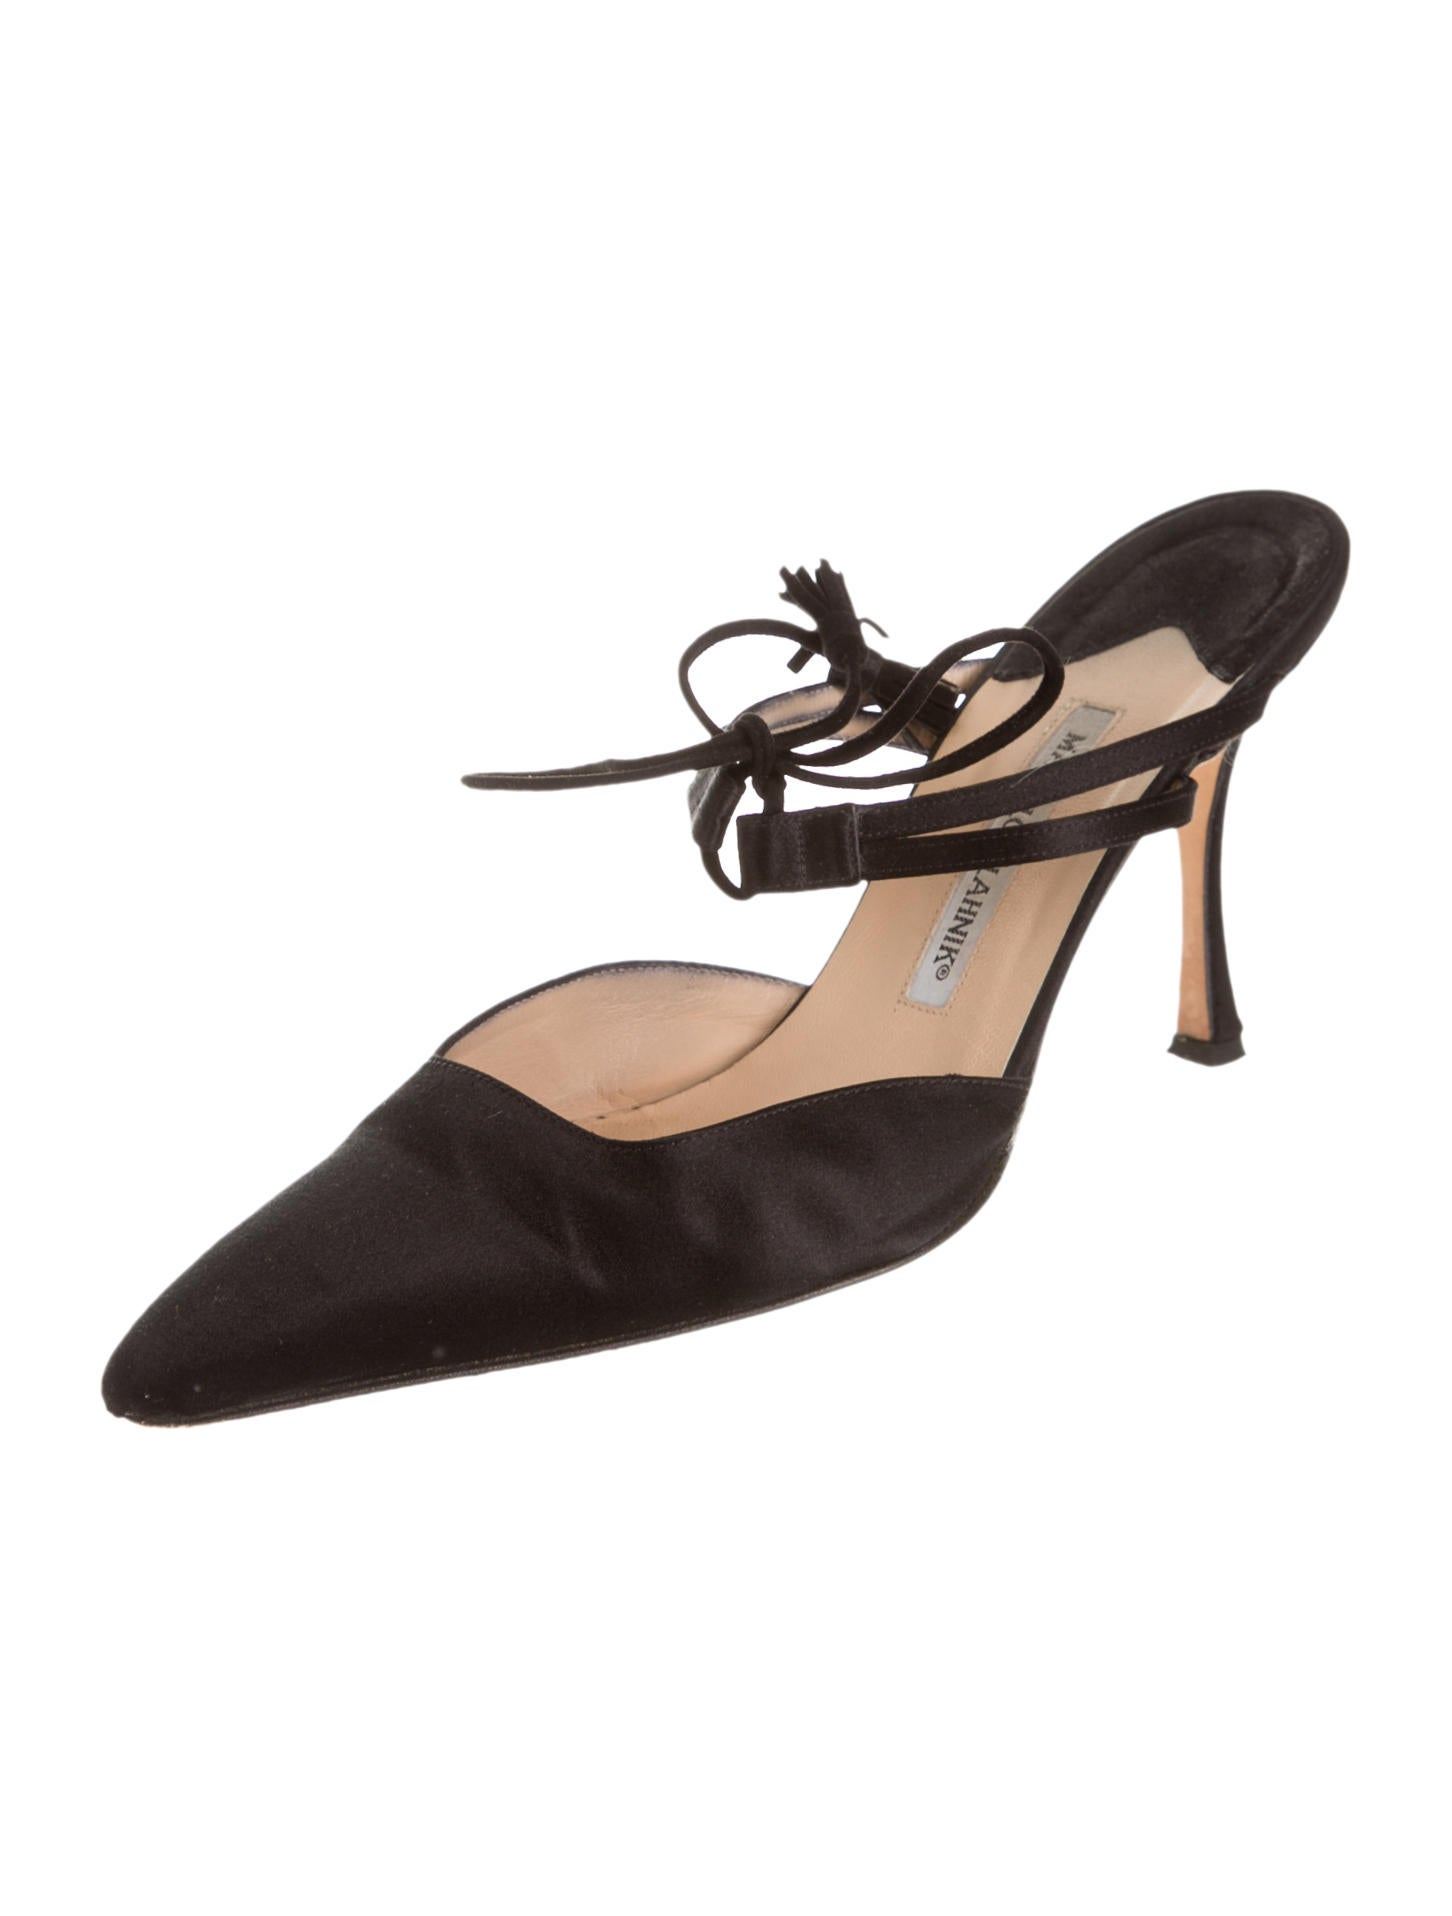 Manolo blahnik pumps shoes moo32983 the realreal for Shoes by manolo blahnik